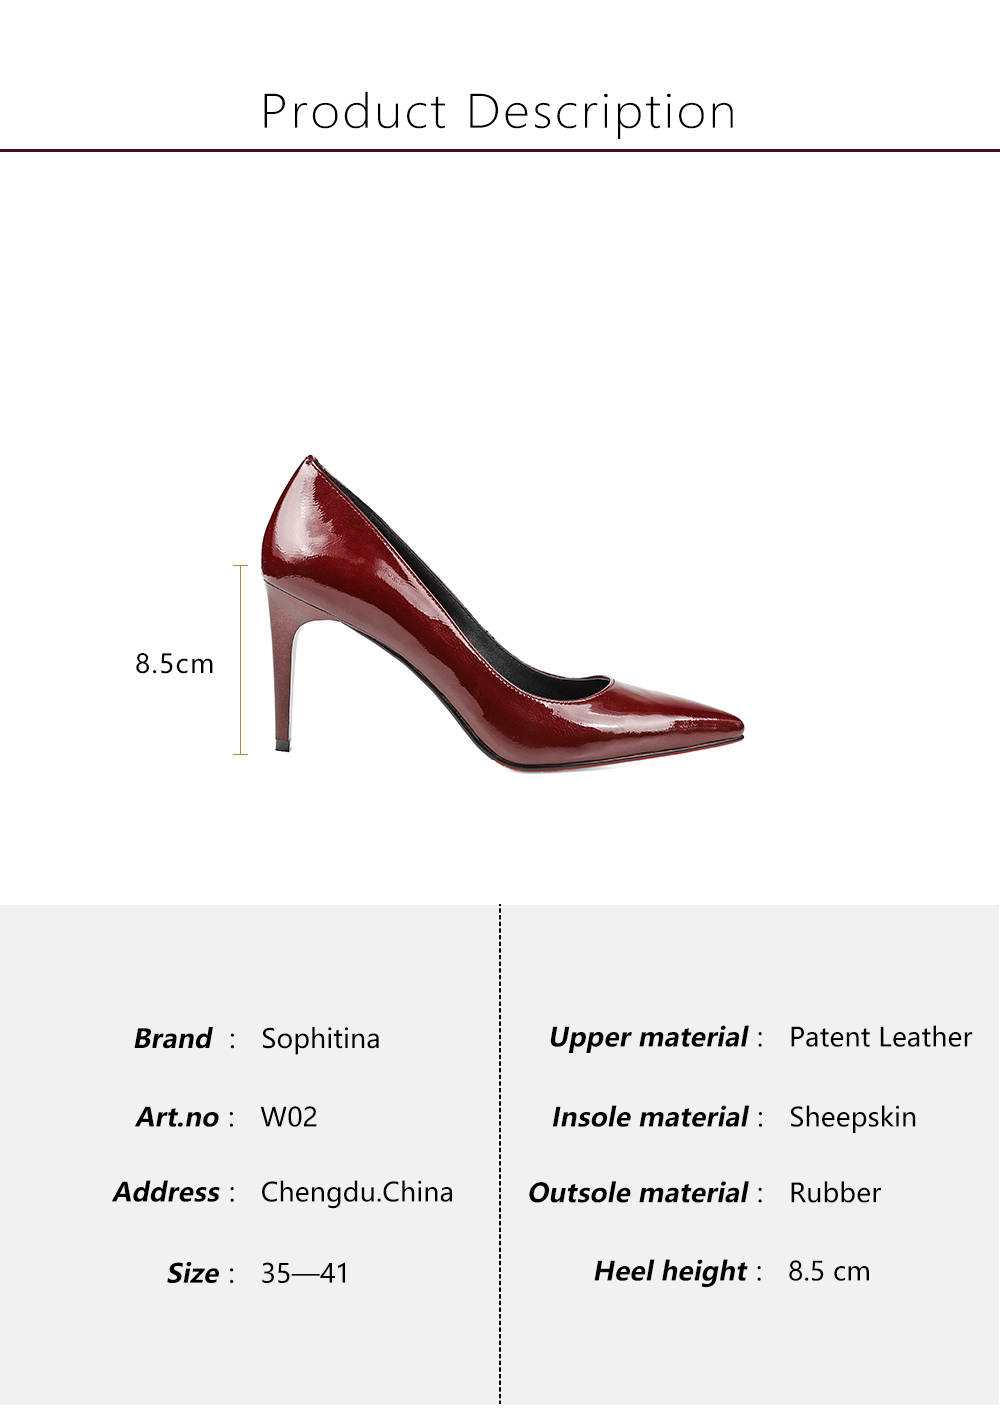 ... Bordeaux Patent Leather Thin Heels Pointed Toe New Girl Wedding Pumps  High Heel Sheepskin Shoes Women W2. 3 01. 3 02 3 03 01. brand name    SOPHITINA aebdda37a80b